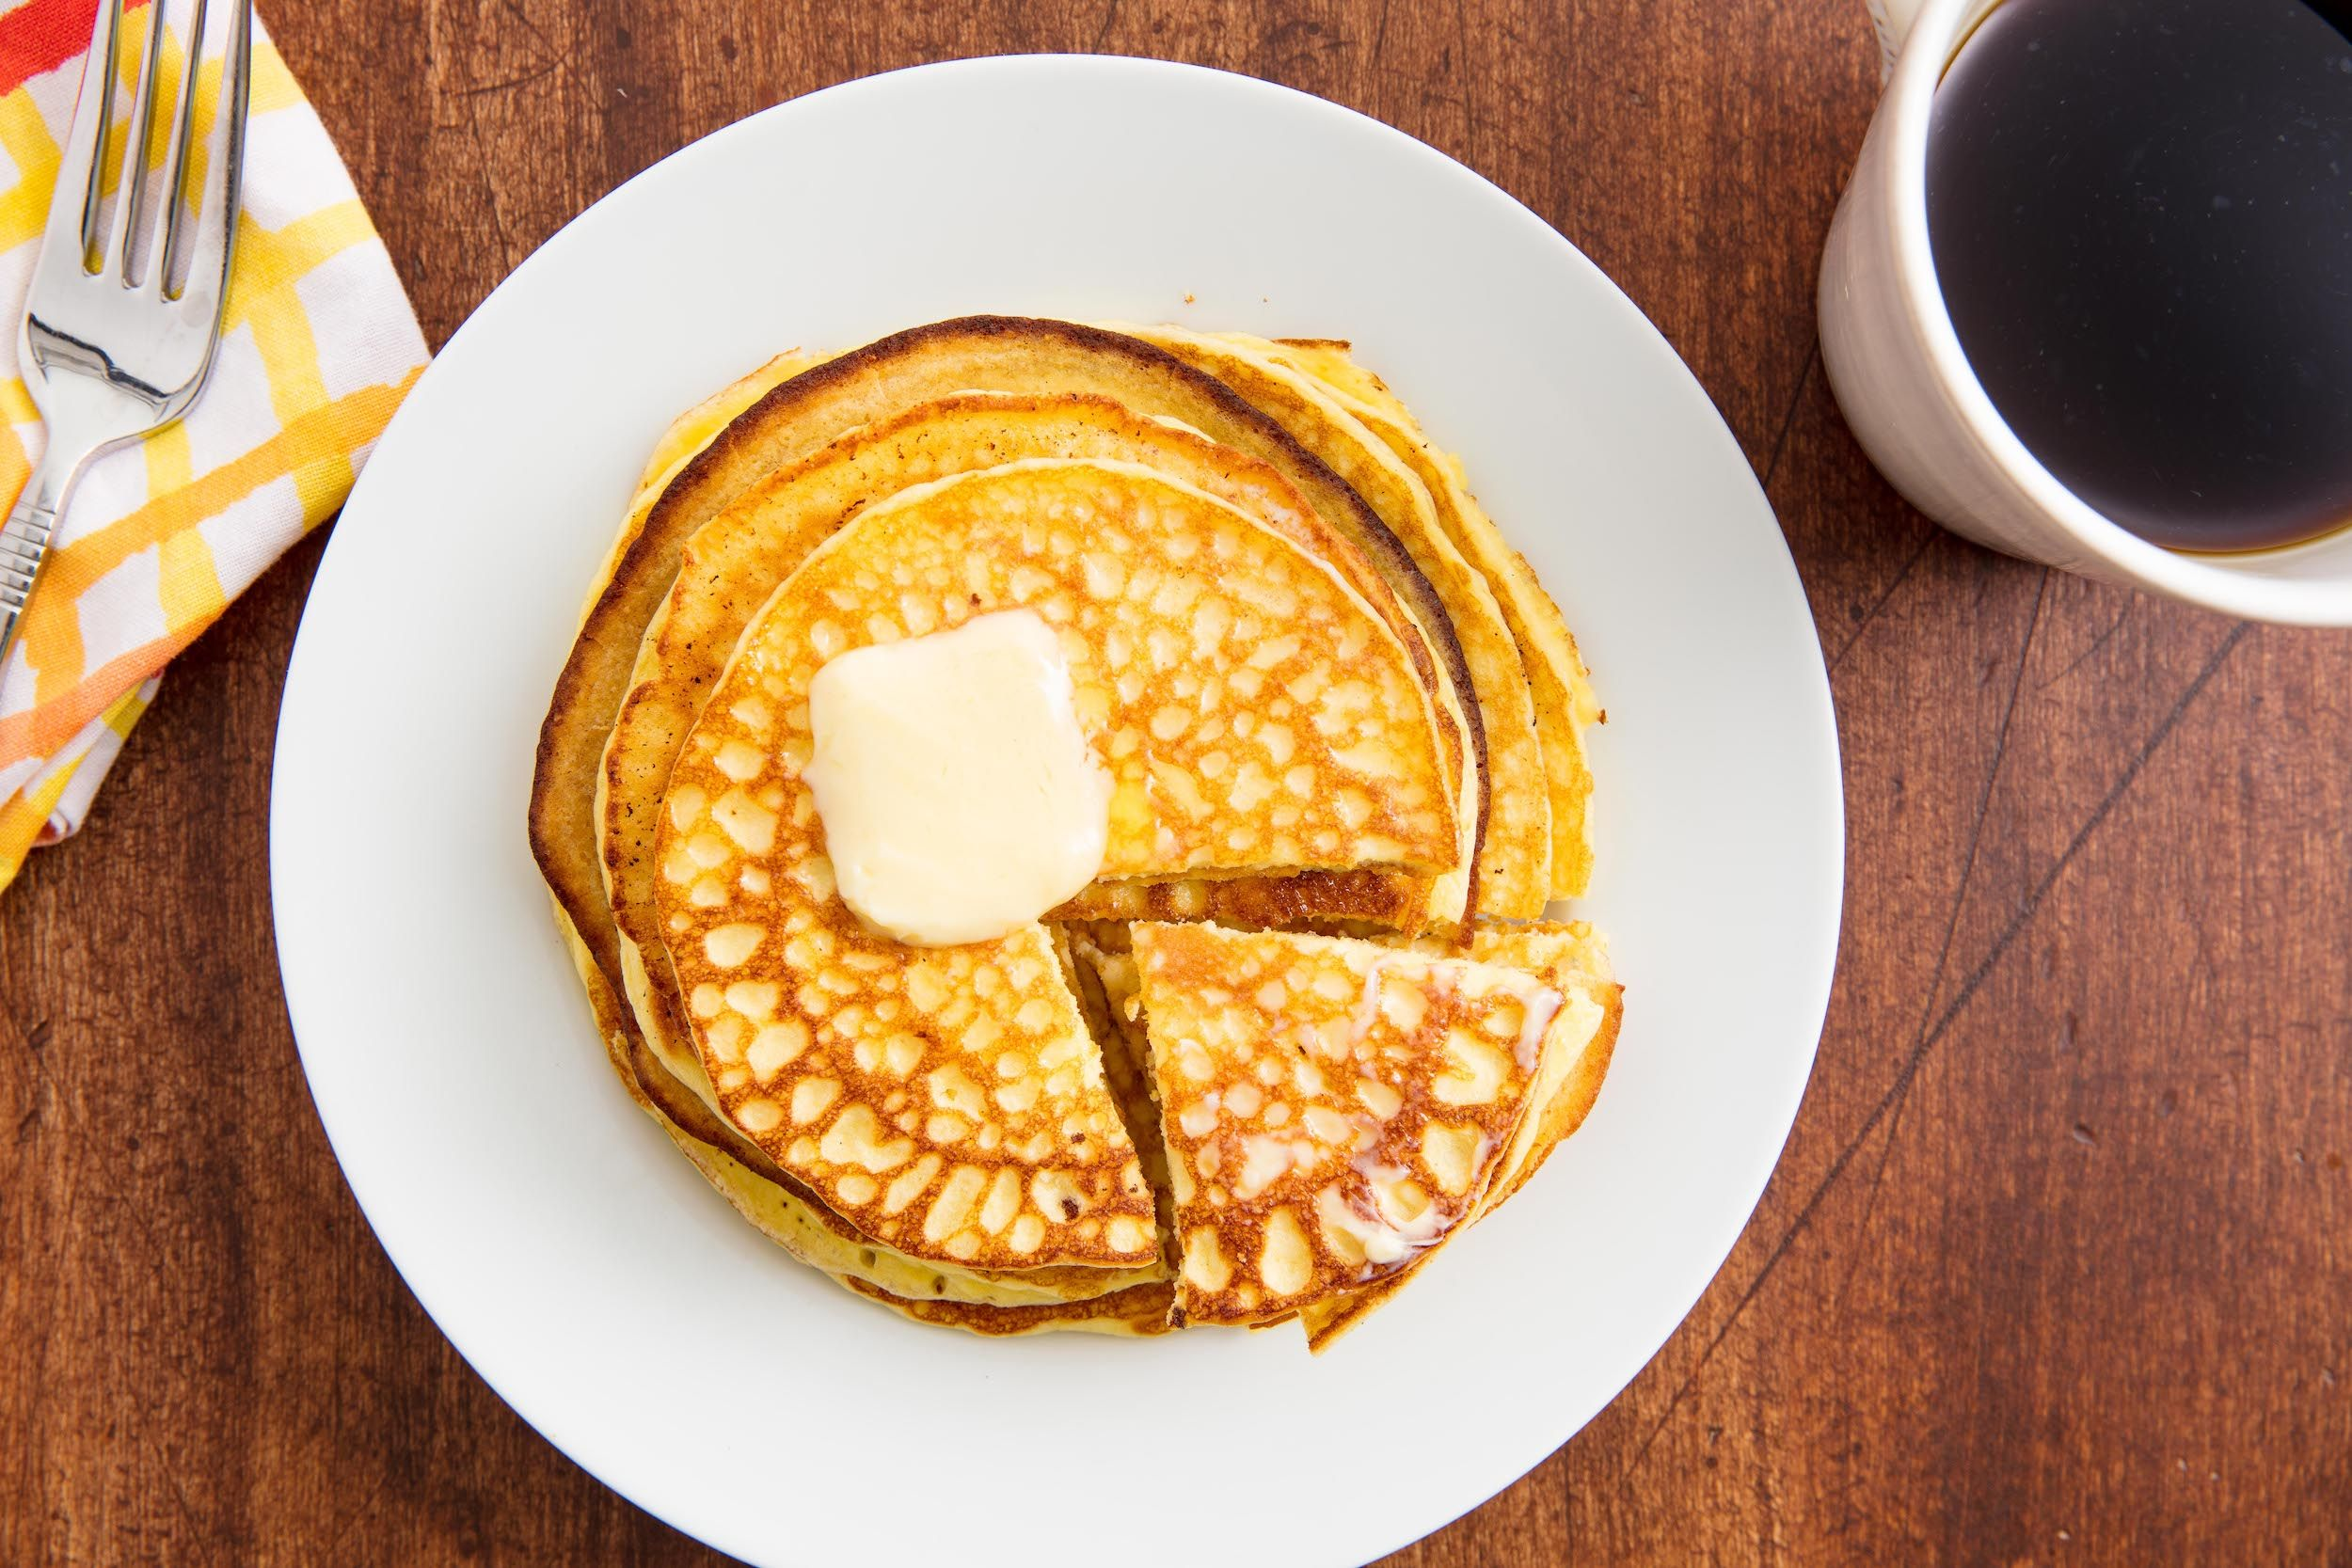 best keto pancake recipe - how to make low carb pancakes with almond